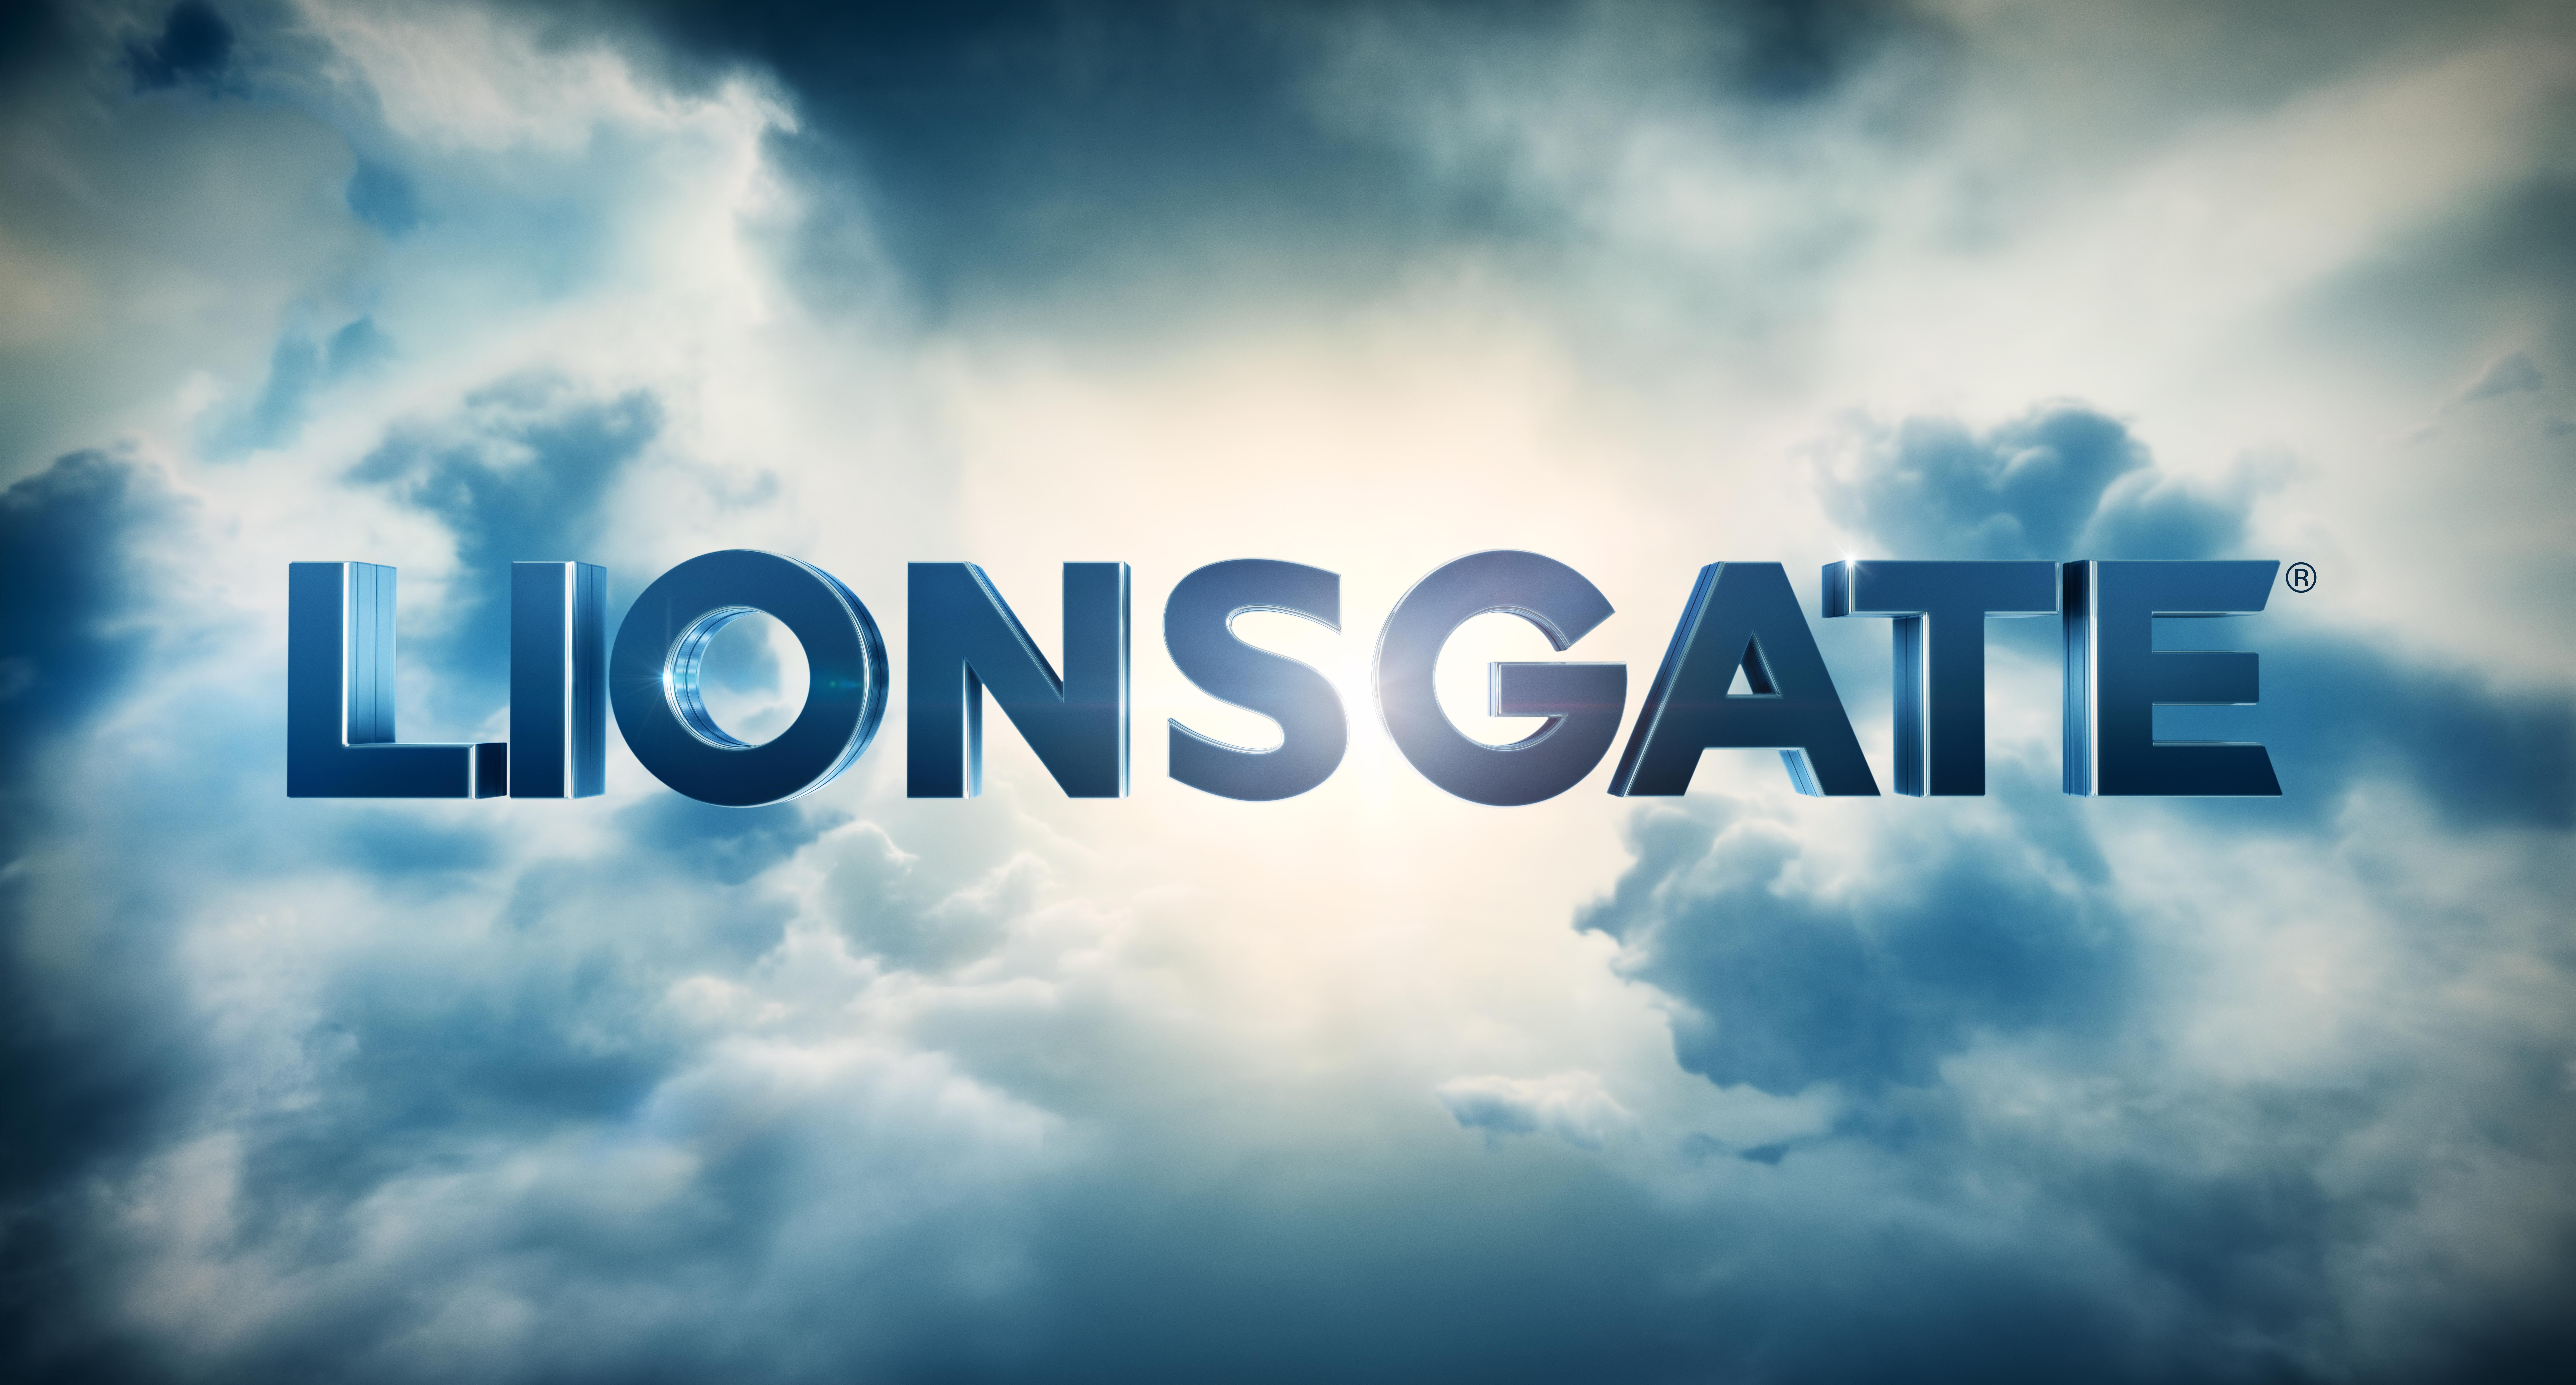 LionsGate and Michael Milken invest into eSports